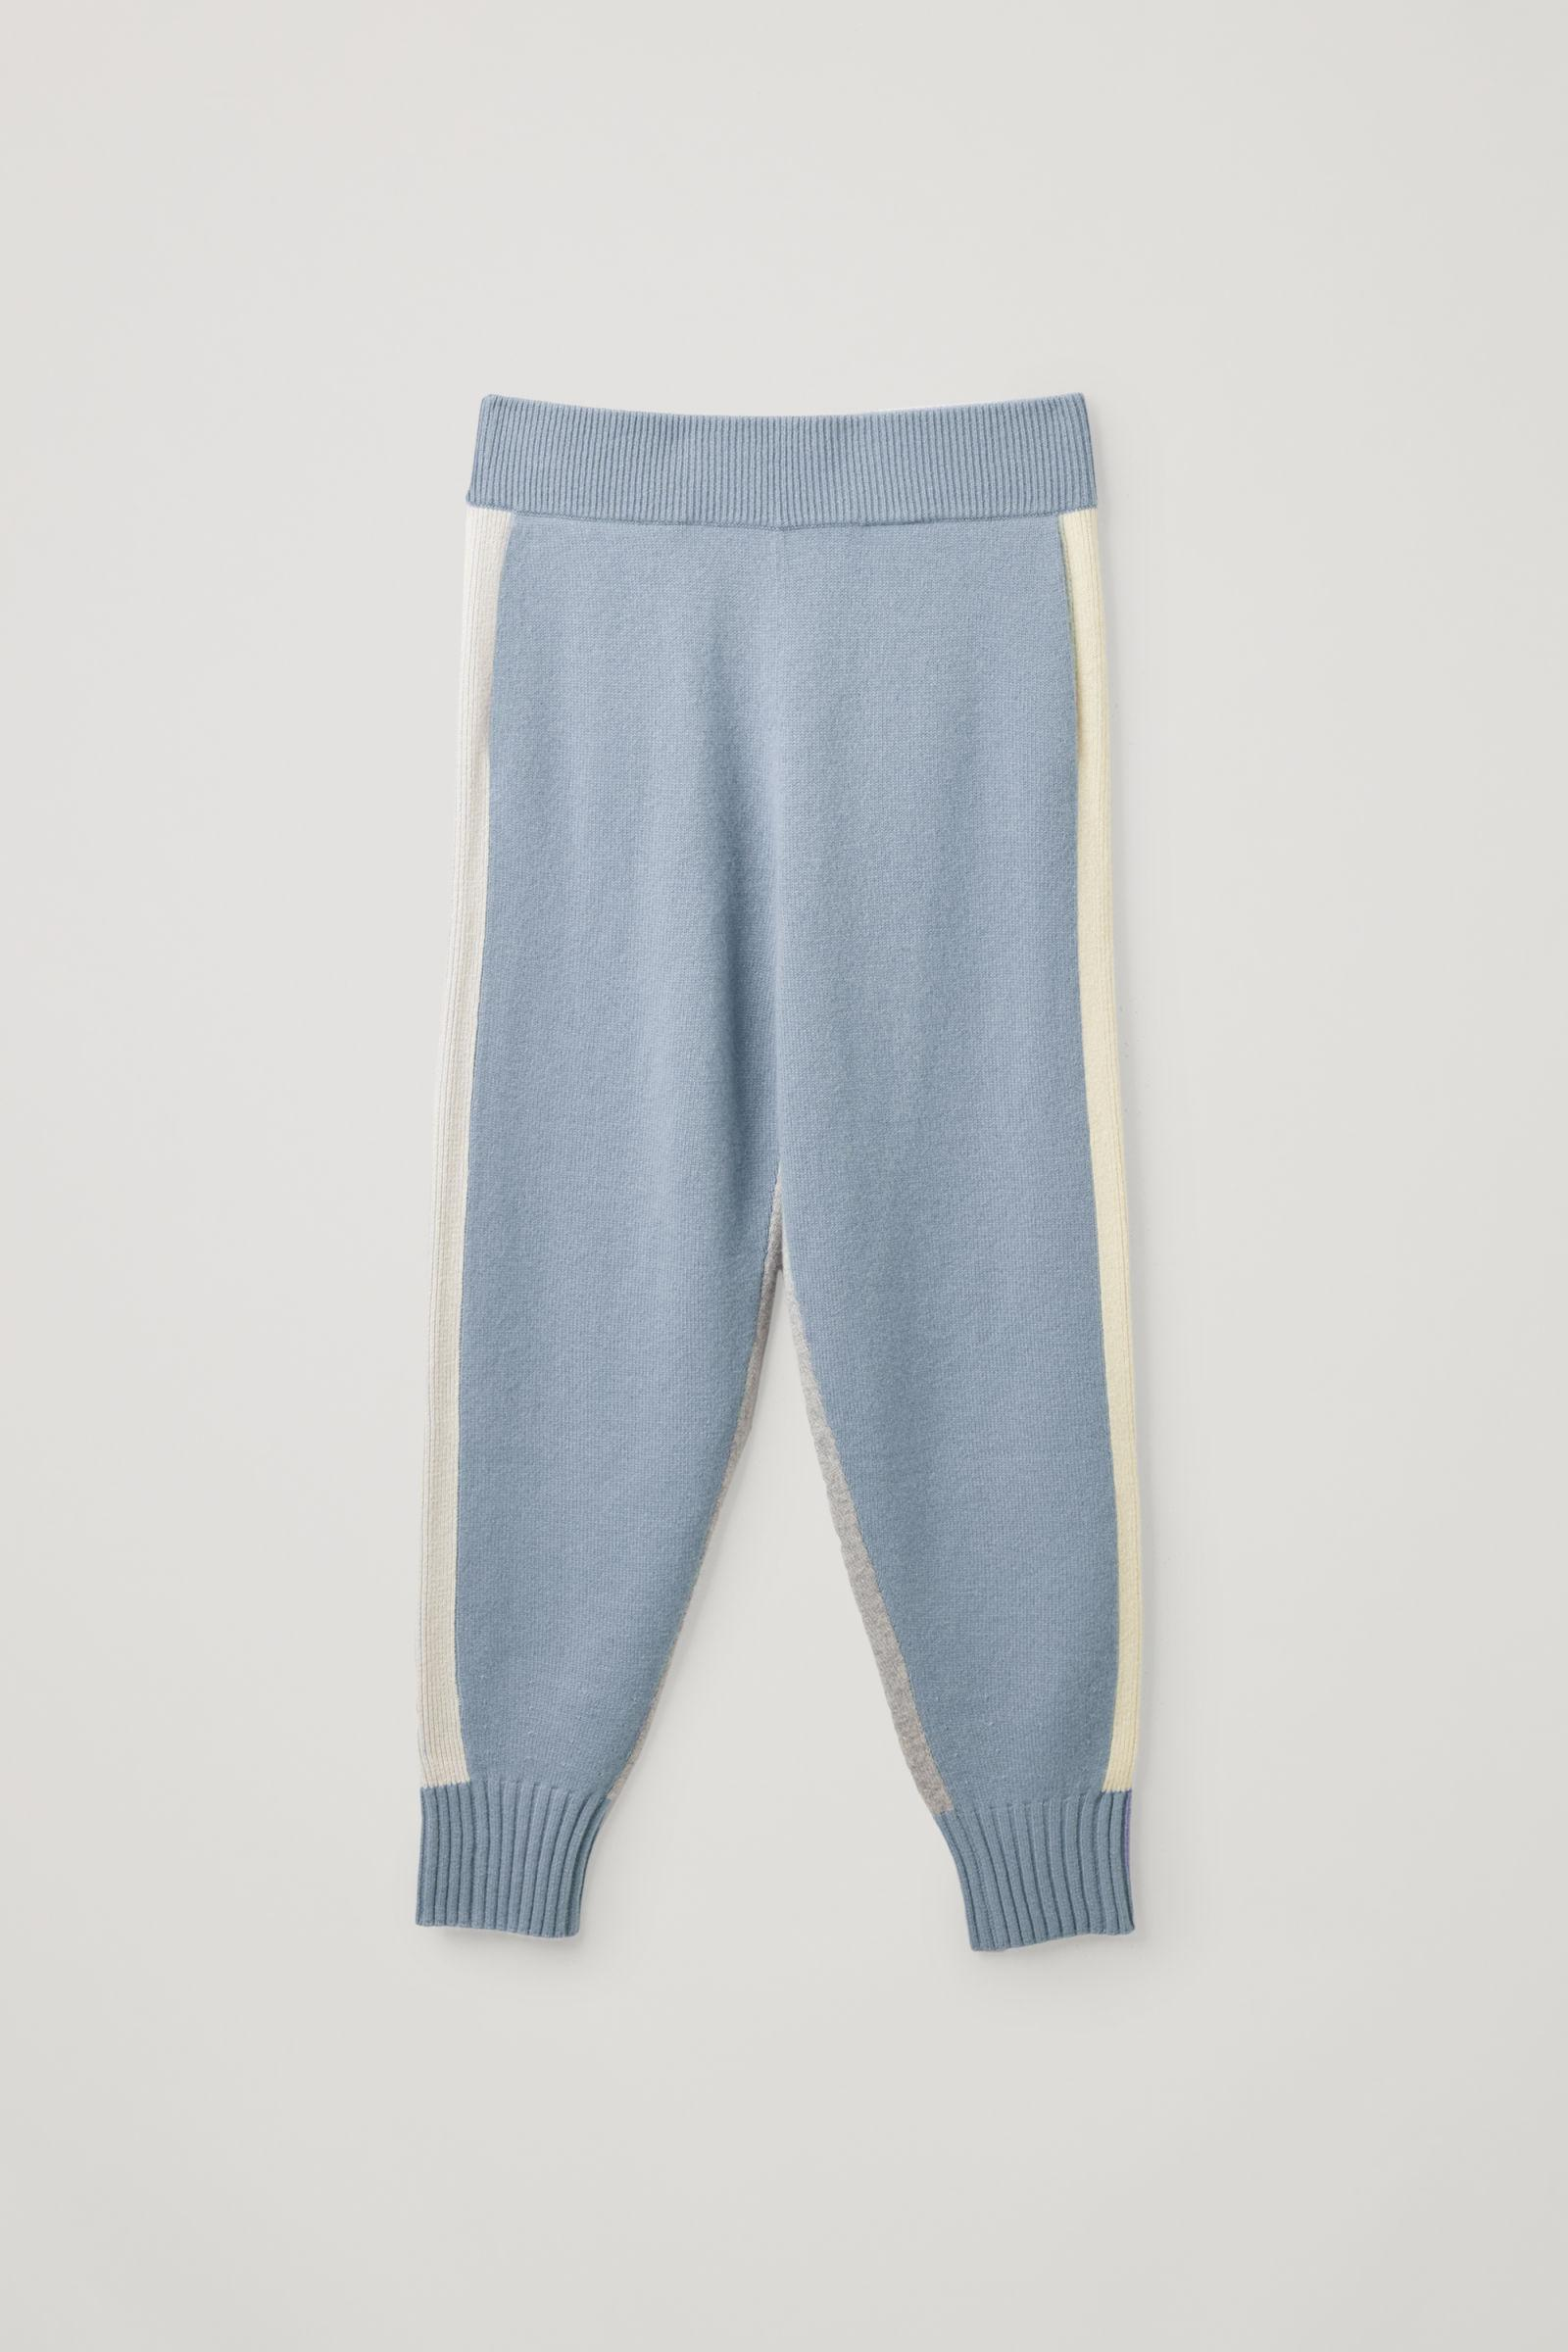 CASHMERE KNITTED JOGGERS 6